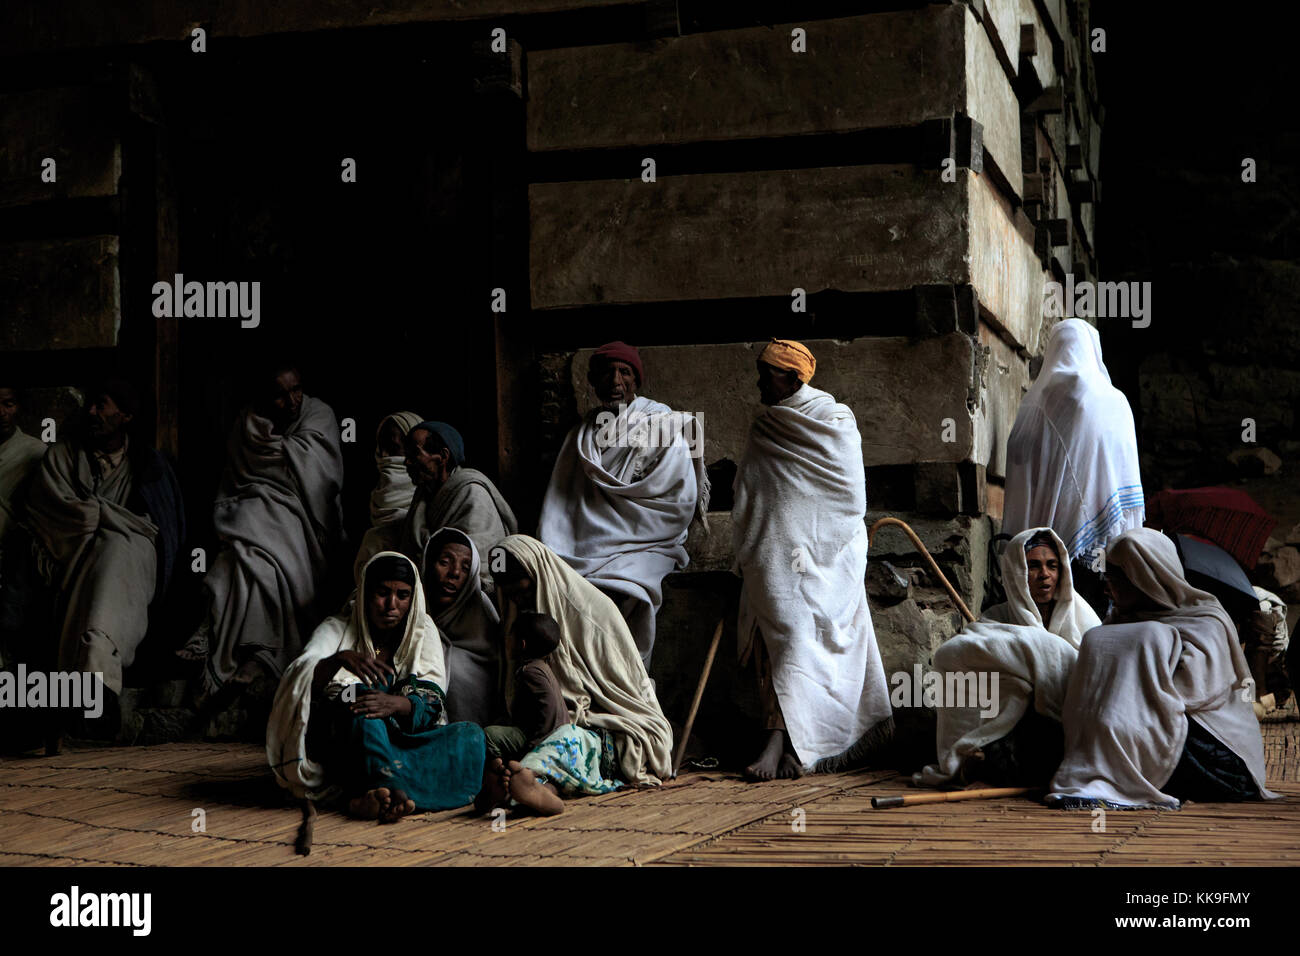 Believers at Yemrehana Krestos Church, an impressive cave church near Lalibela, Ethiopia. - Stock Image